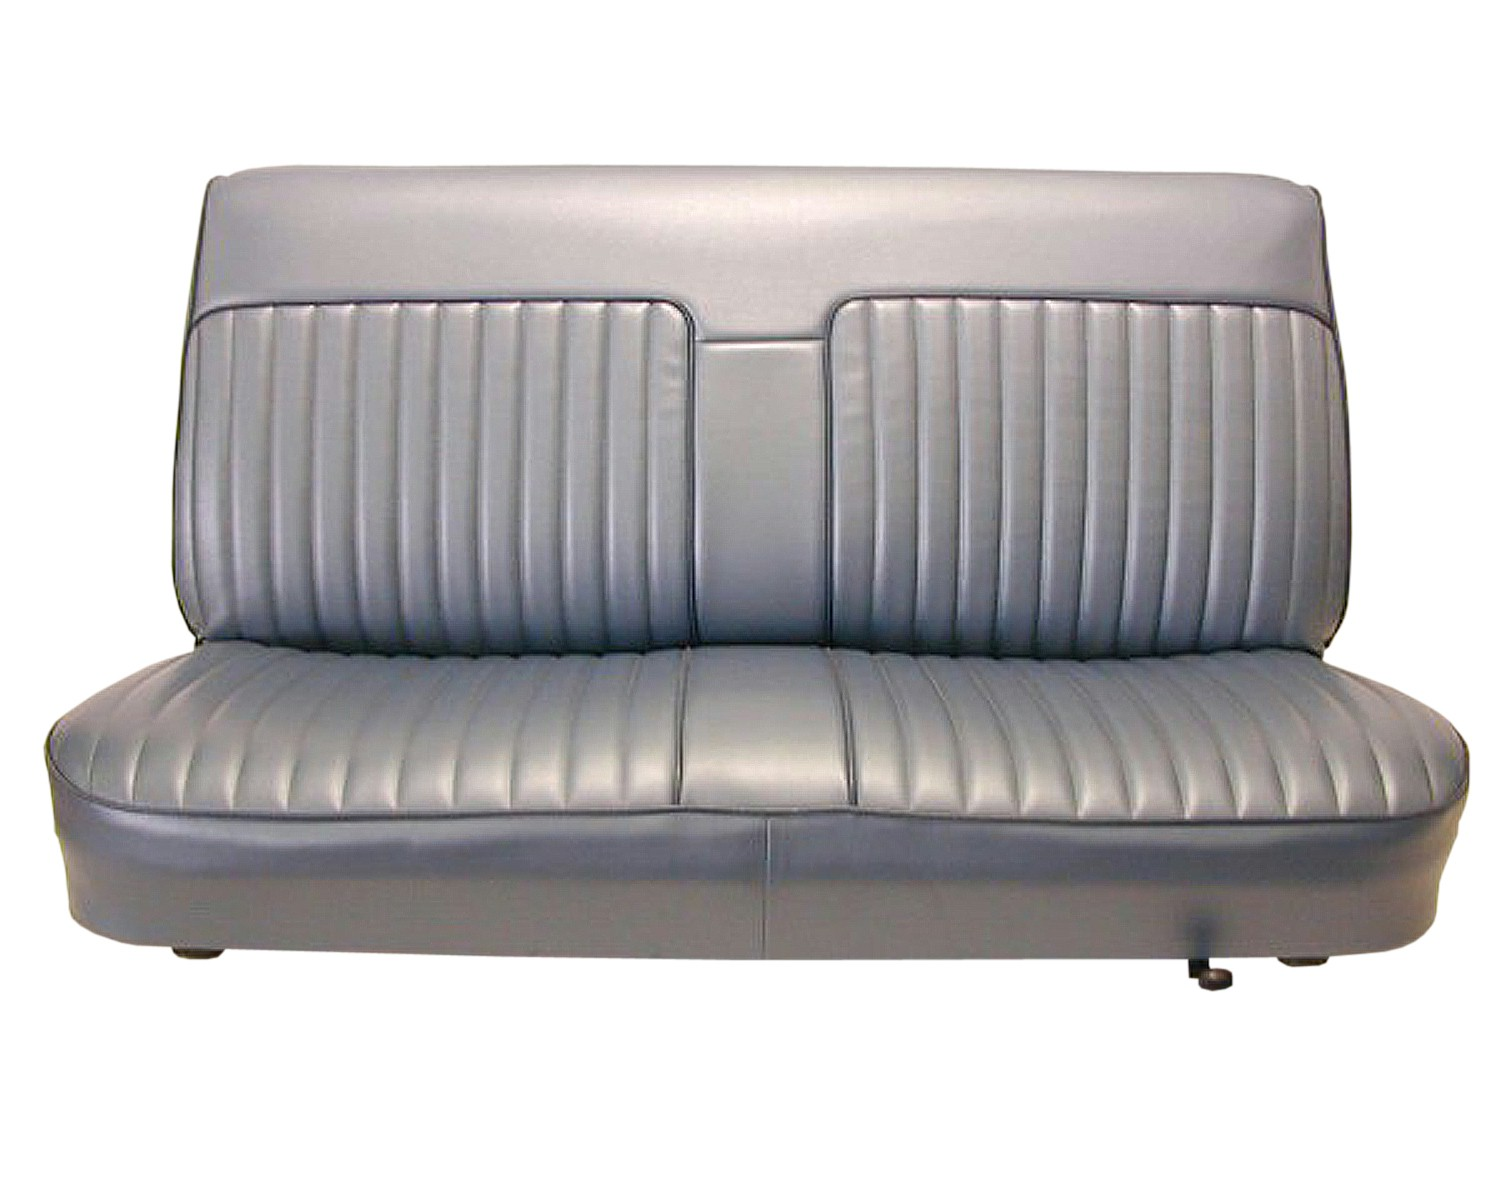 Chevy Bench Seat ~ Chevy truck seat upholstery autos post